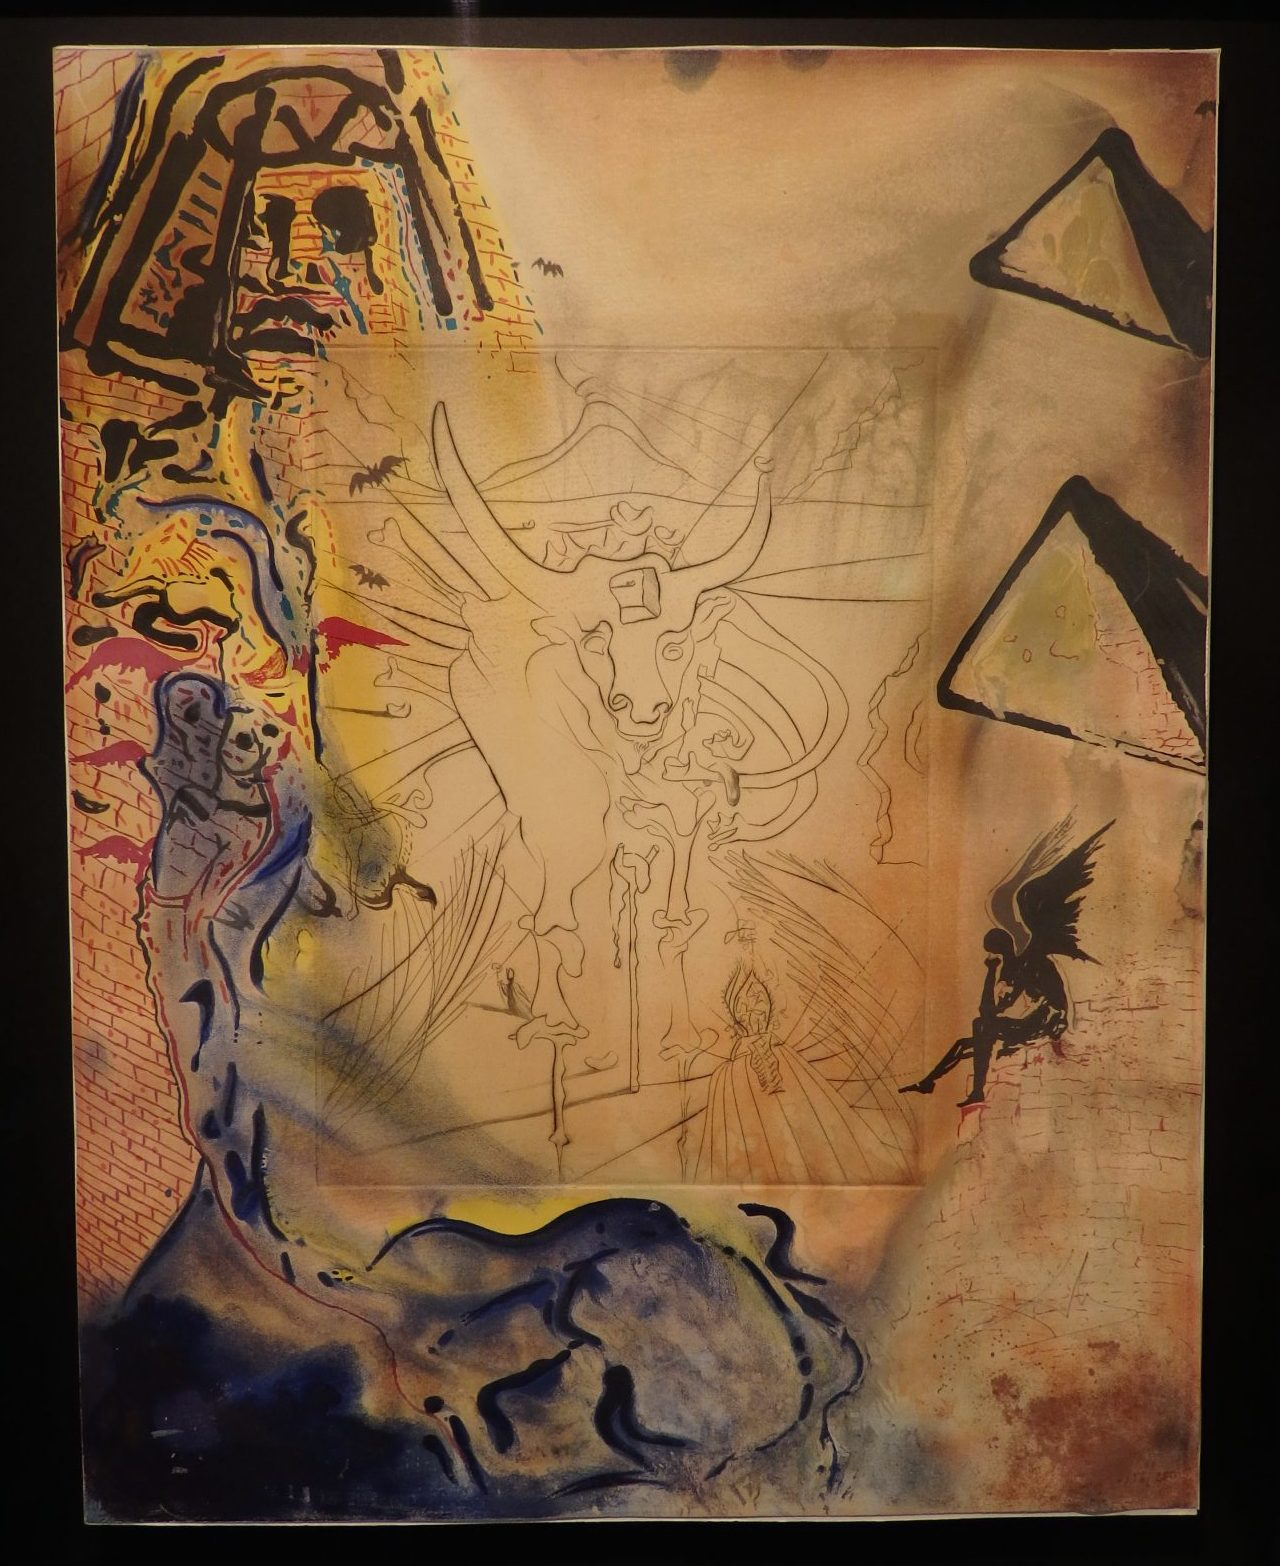 One of a series of lithographs depicting the Exodus story. Salvador Dali at the Moco Museum in Amsterdam.